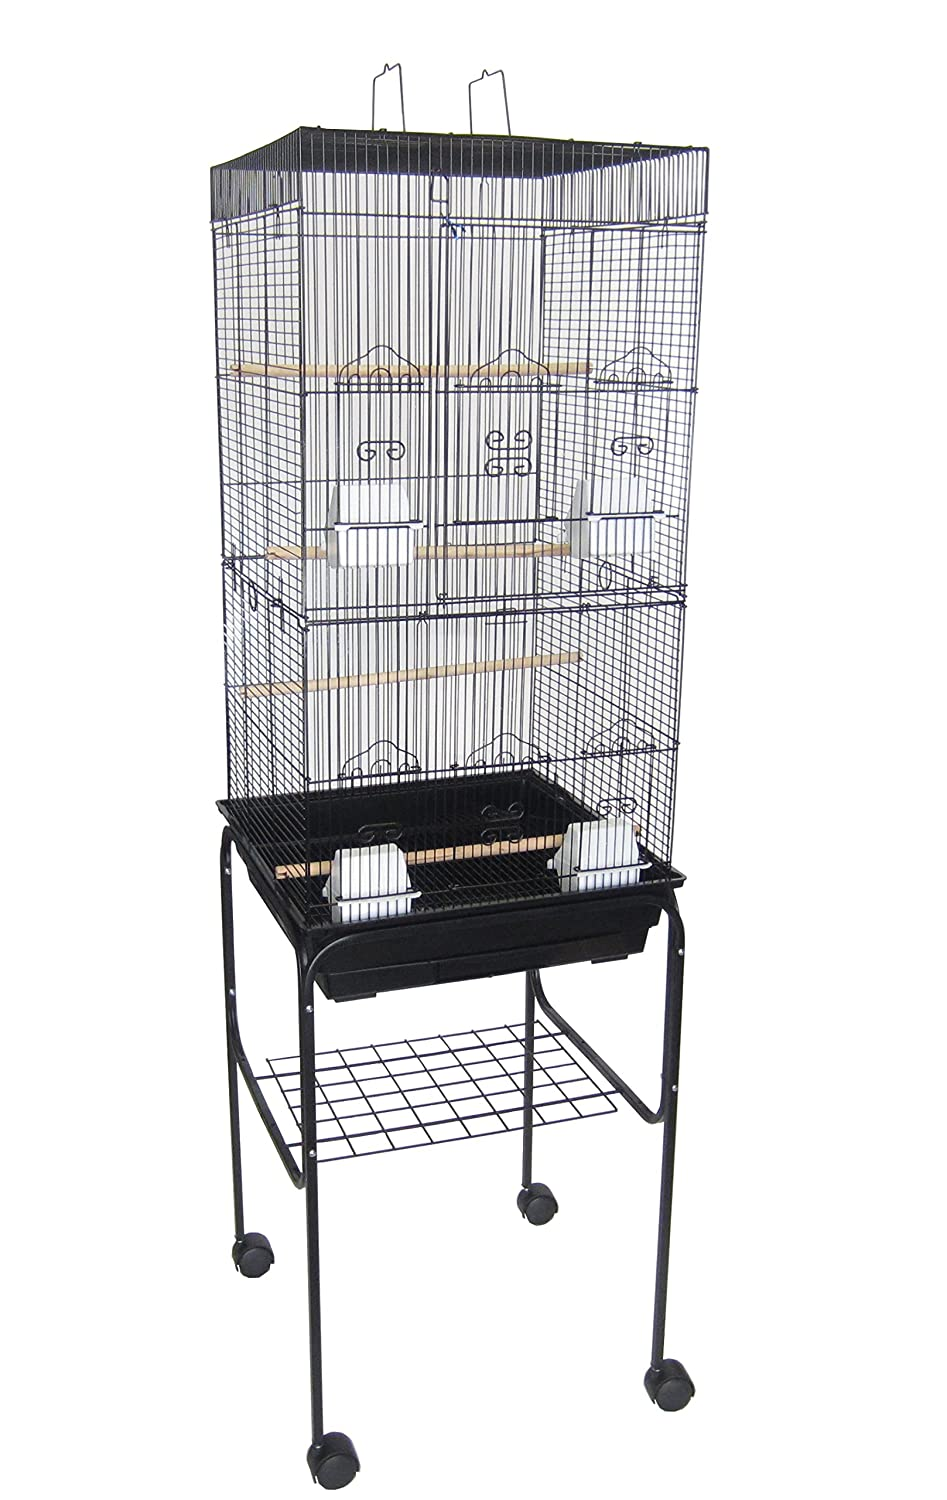 YML 6924 3/8-Inch Bar Spacing Tall Flat Top Bird Cage with Stand, 18-Inch by 18-Inch/Small, White 6924_4814WHT